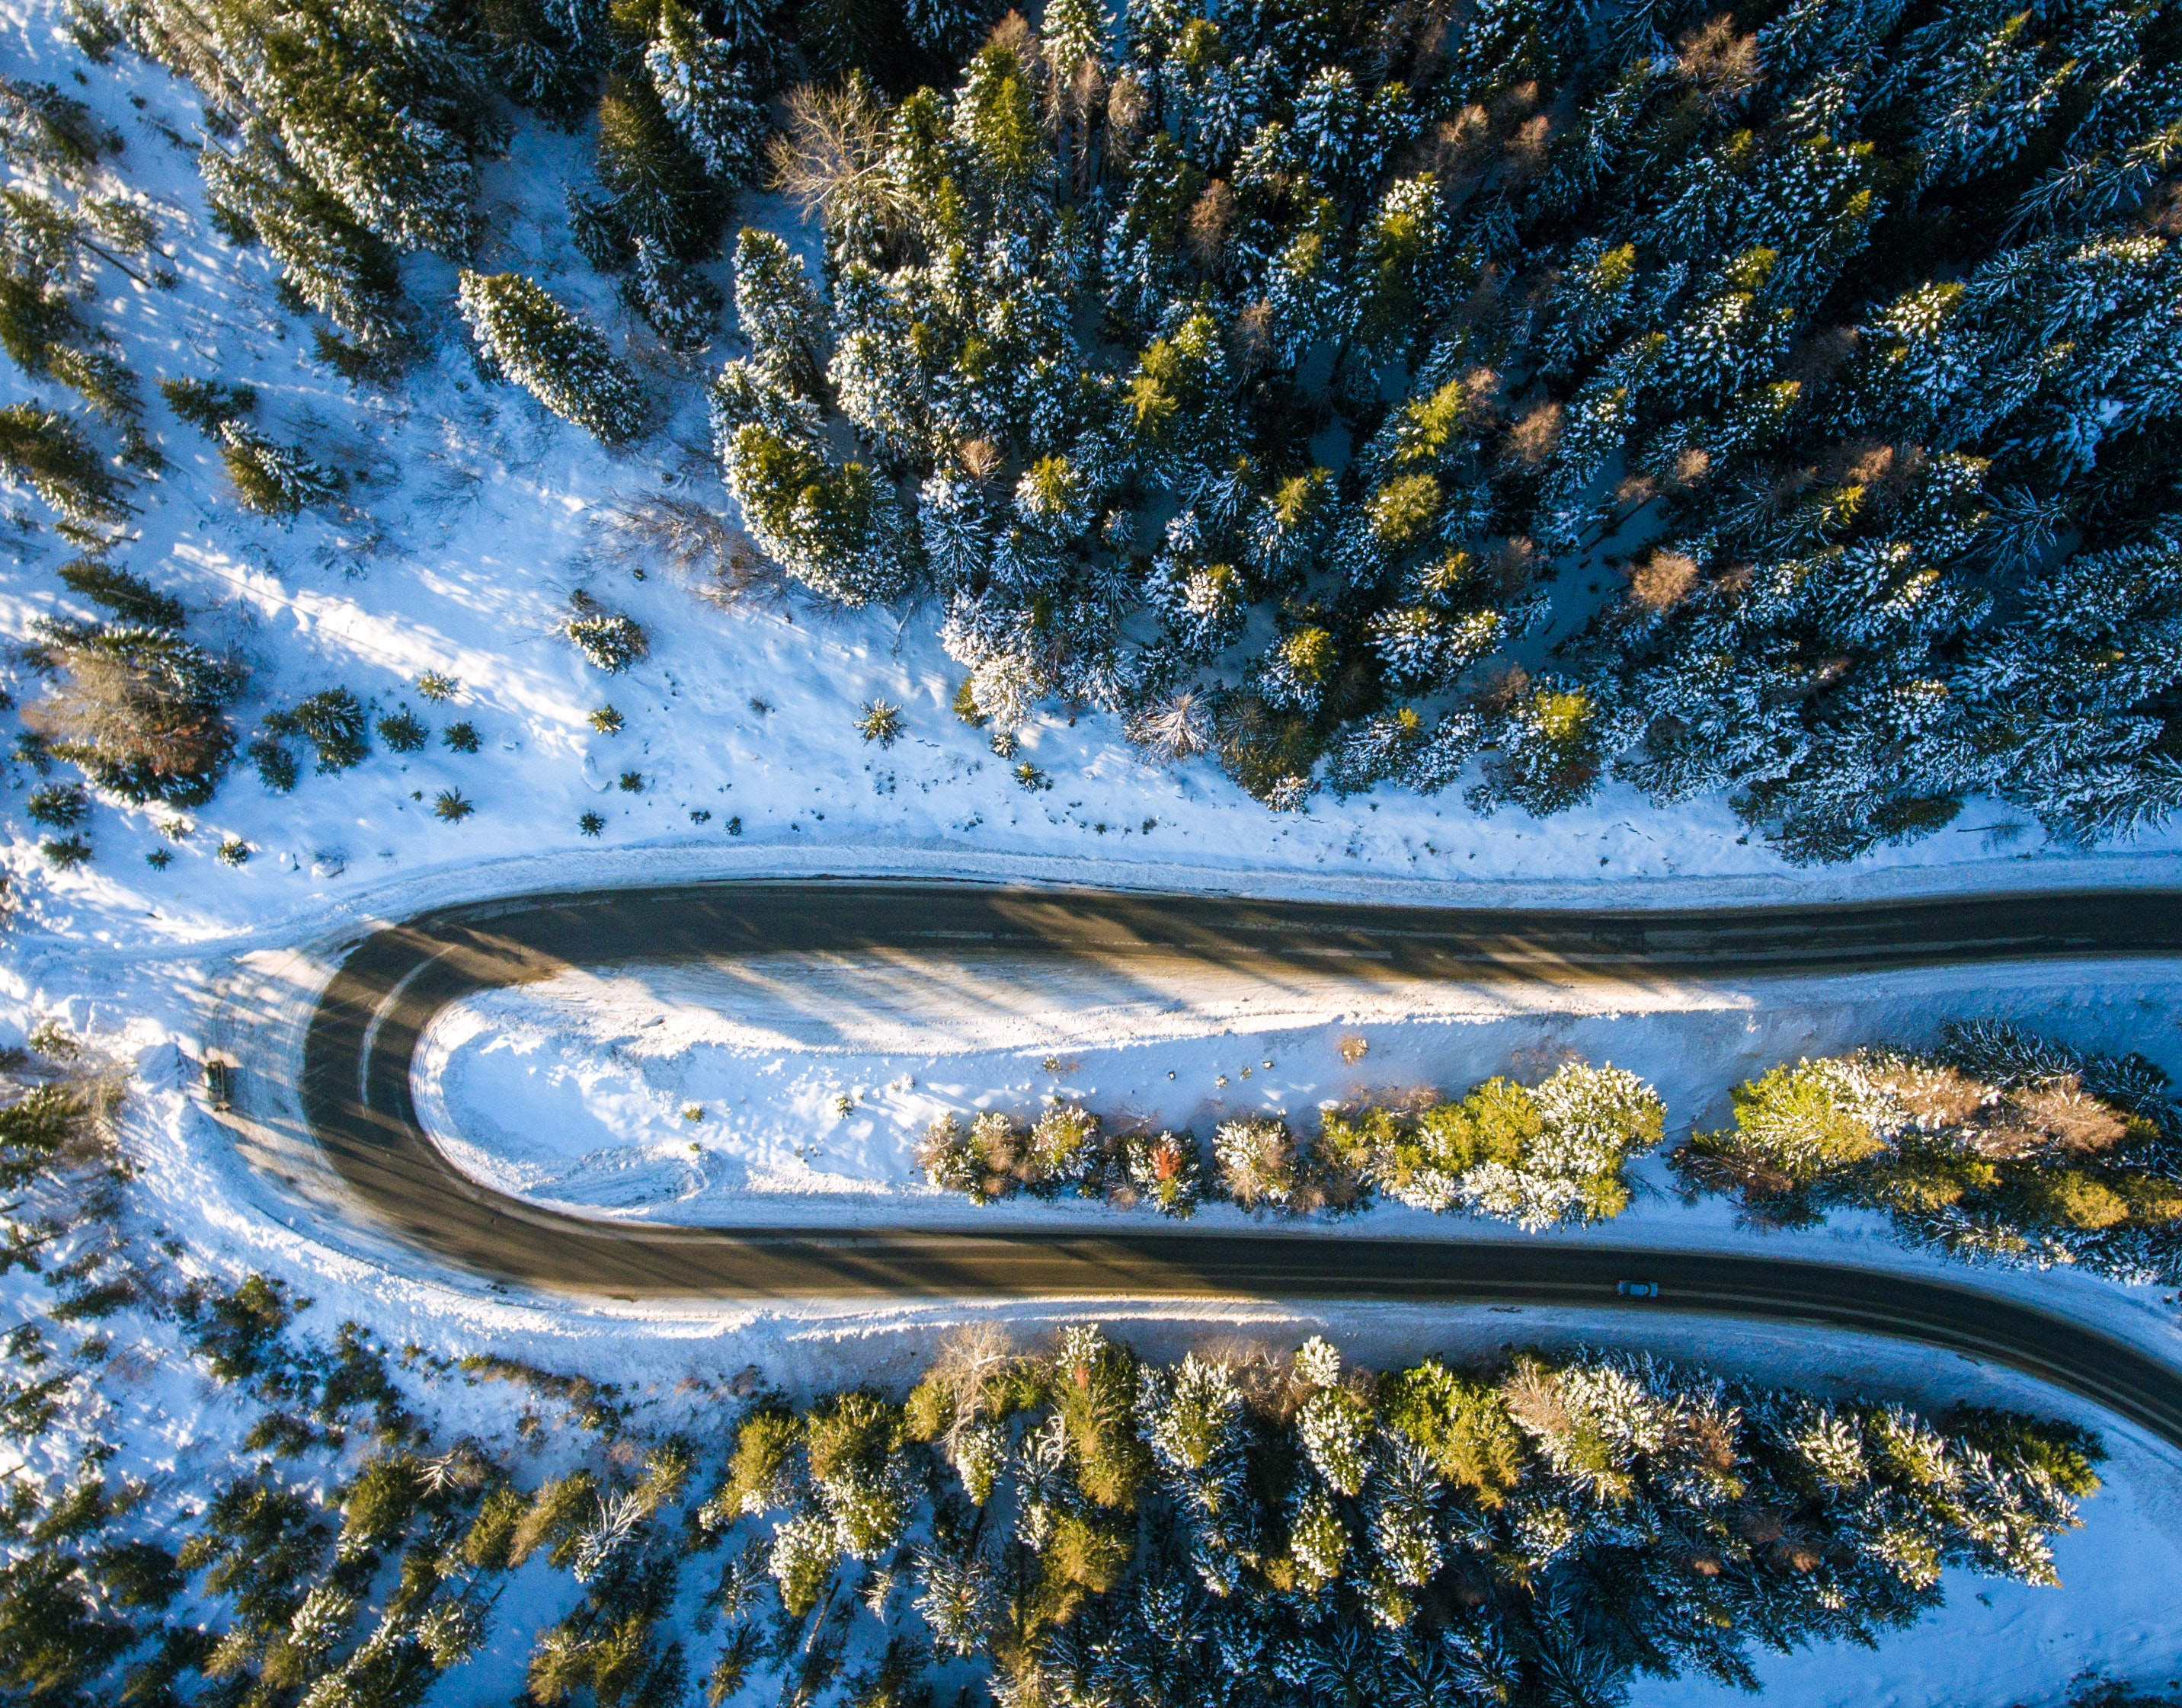 Aerial view of Schweitzer Mountain Road surrounded by icy trees